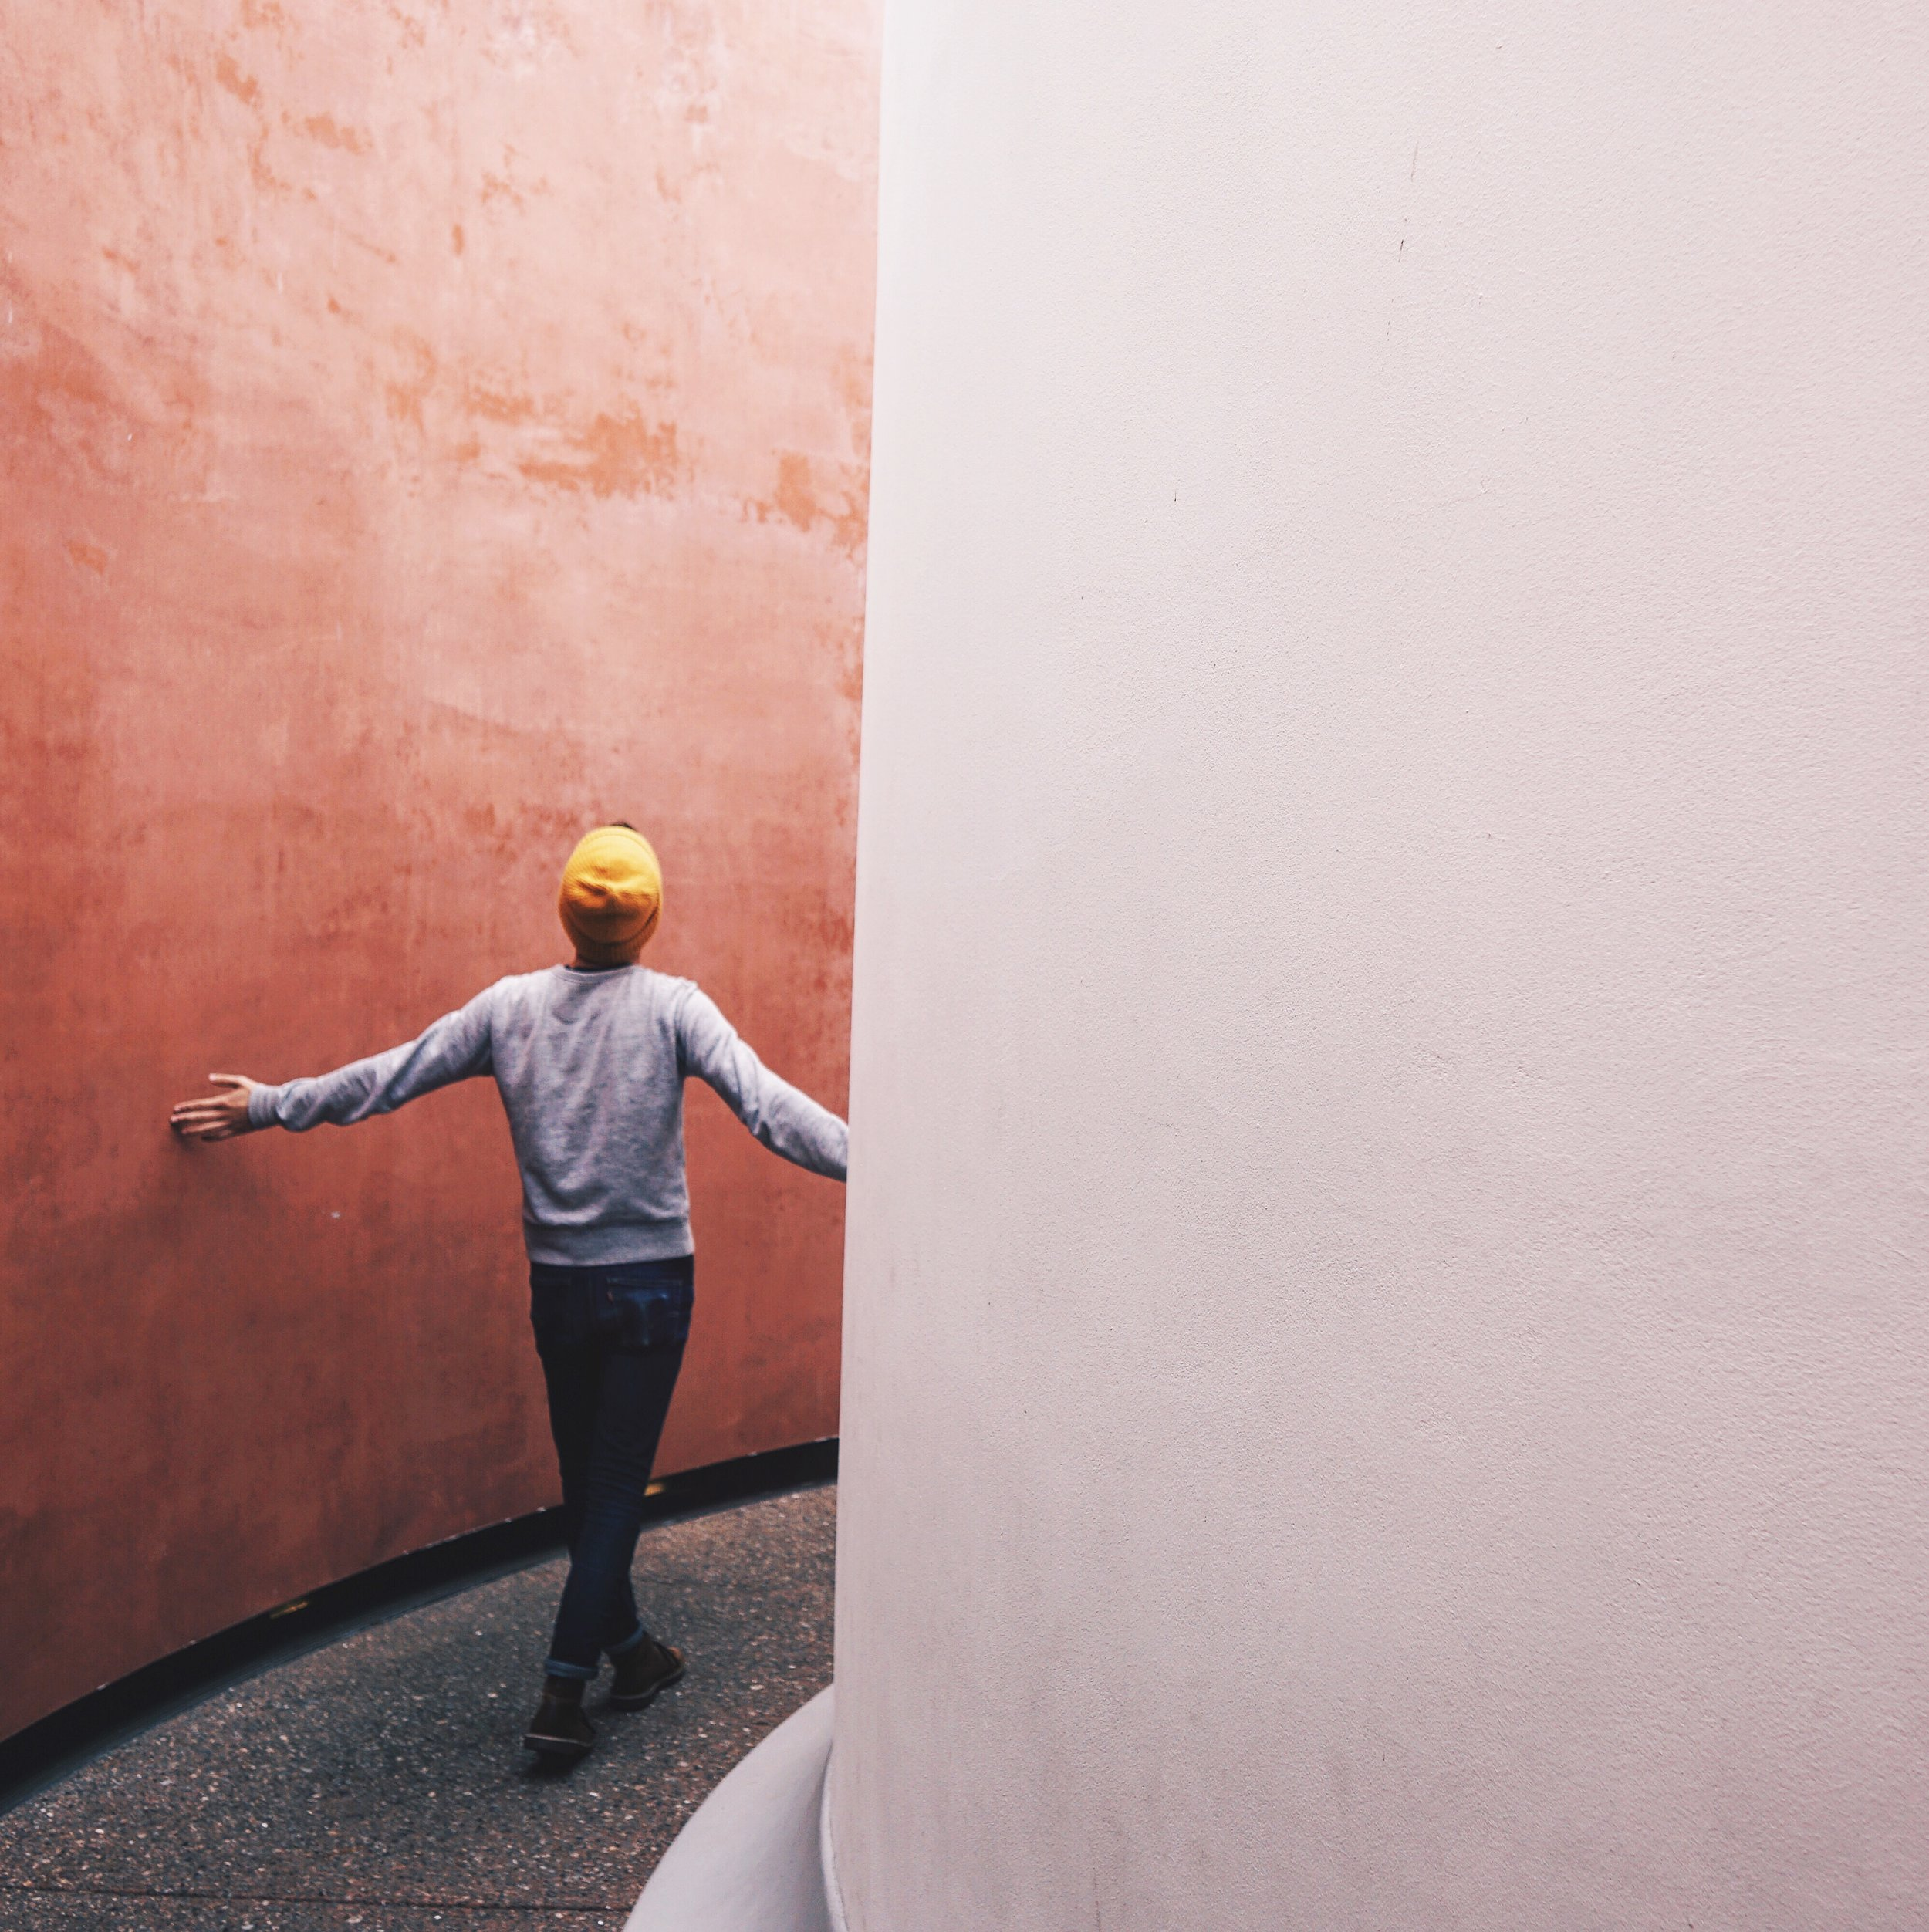 One of James Turrell's Skyspaces at the DeYoung. One of our favorite artists.